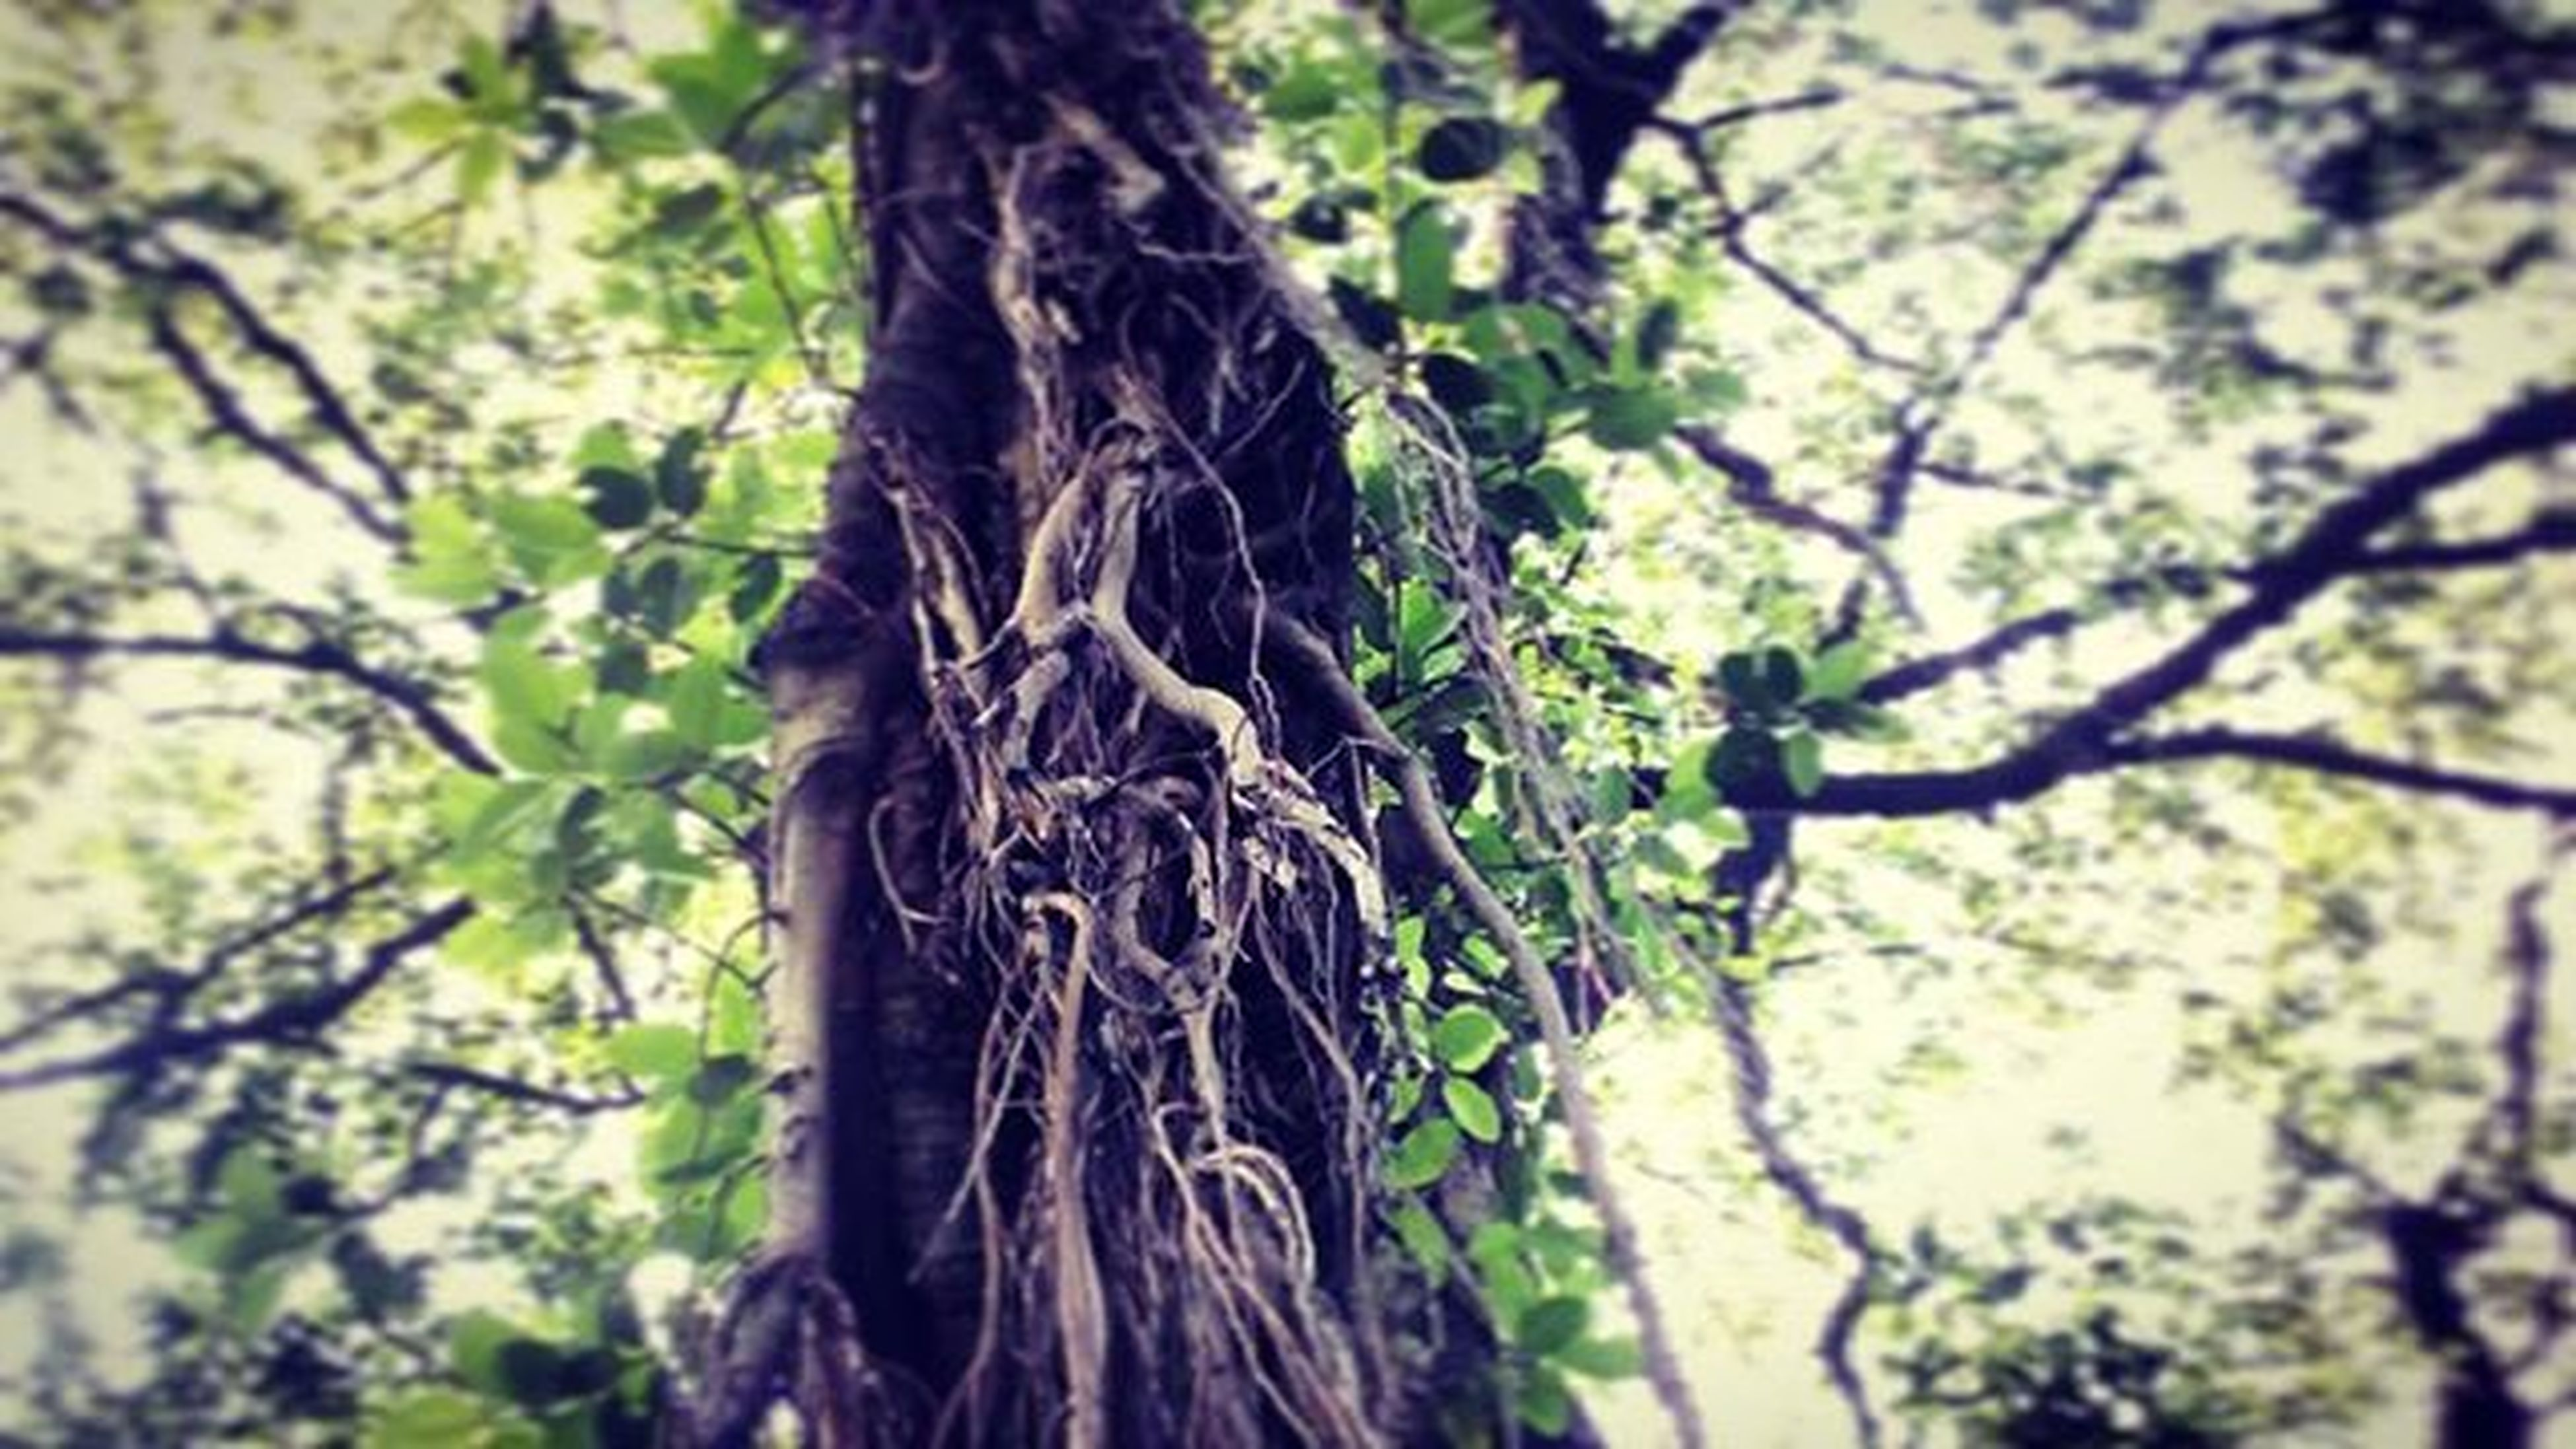 tree, branch, low angle view, tree trunk, growth, focus on foreground, nature, close-up, tranquility, beauty in nature, forest, day, outdoors, bark, selective focus, sky, no people, twig, sunlight, leaf